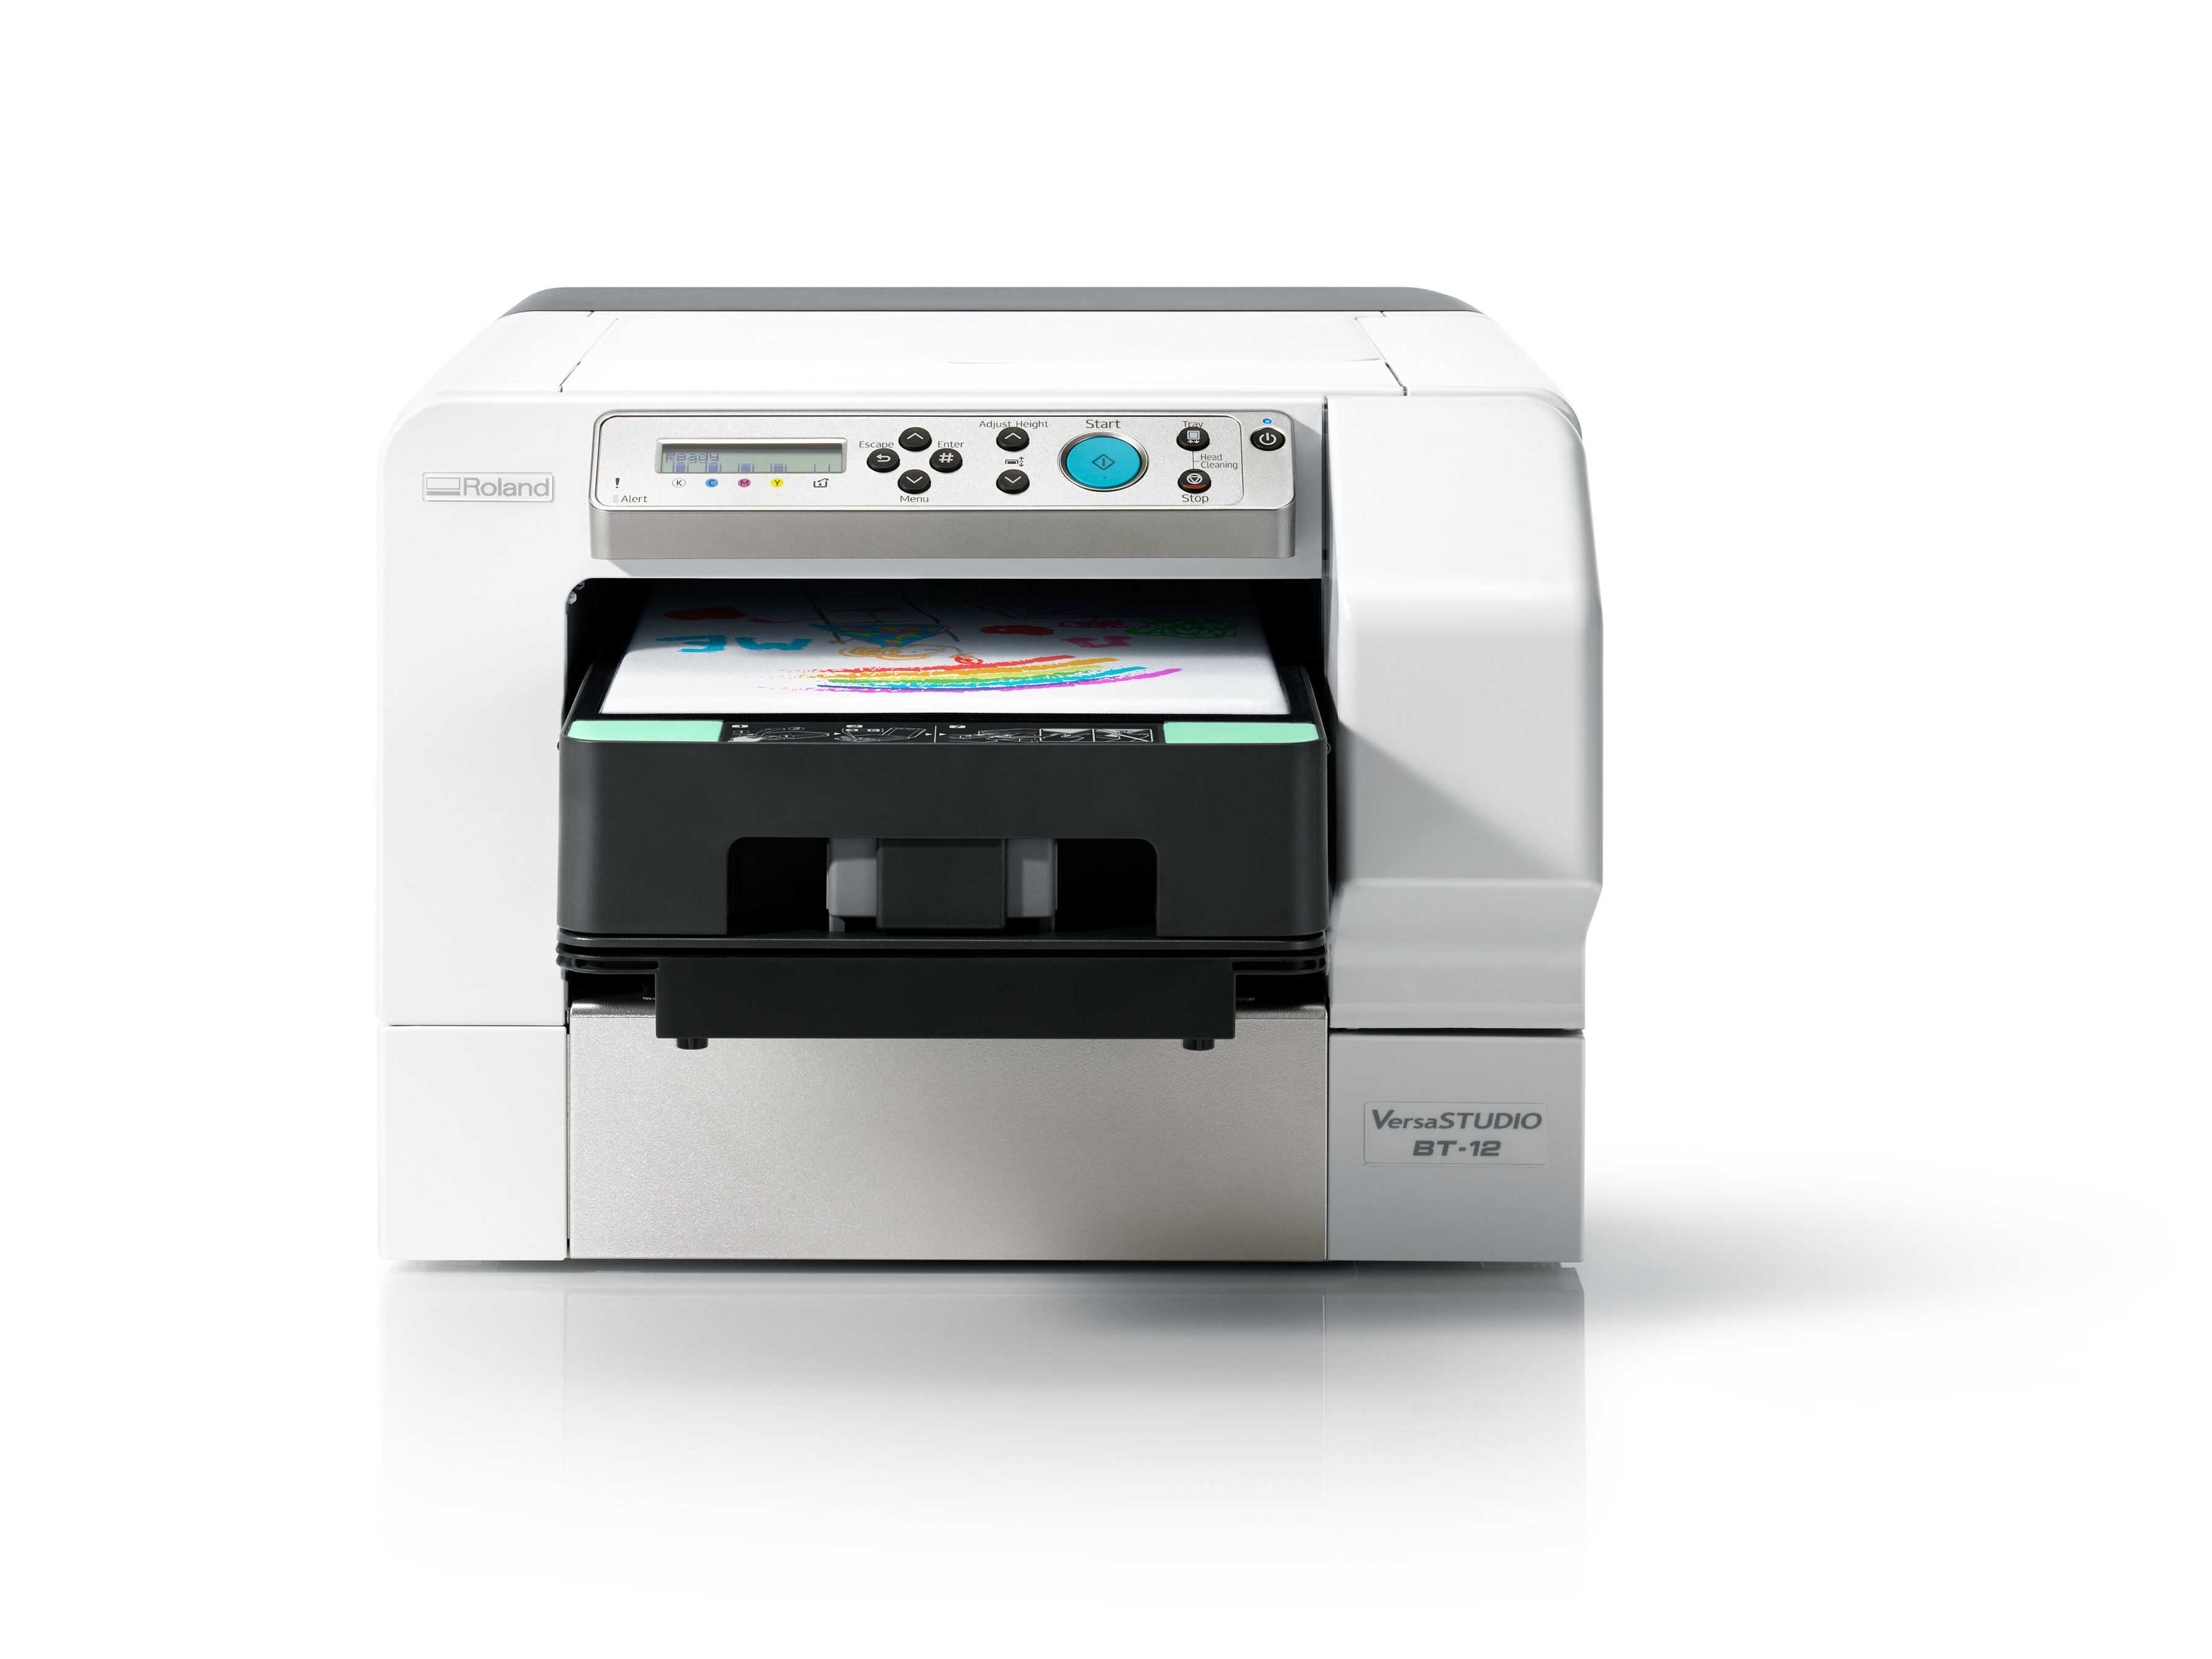 Roland DG Launches its first direct to garment printer for